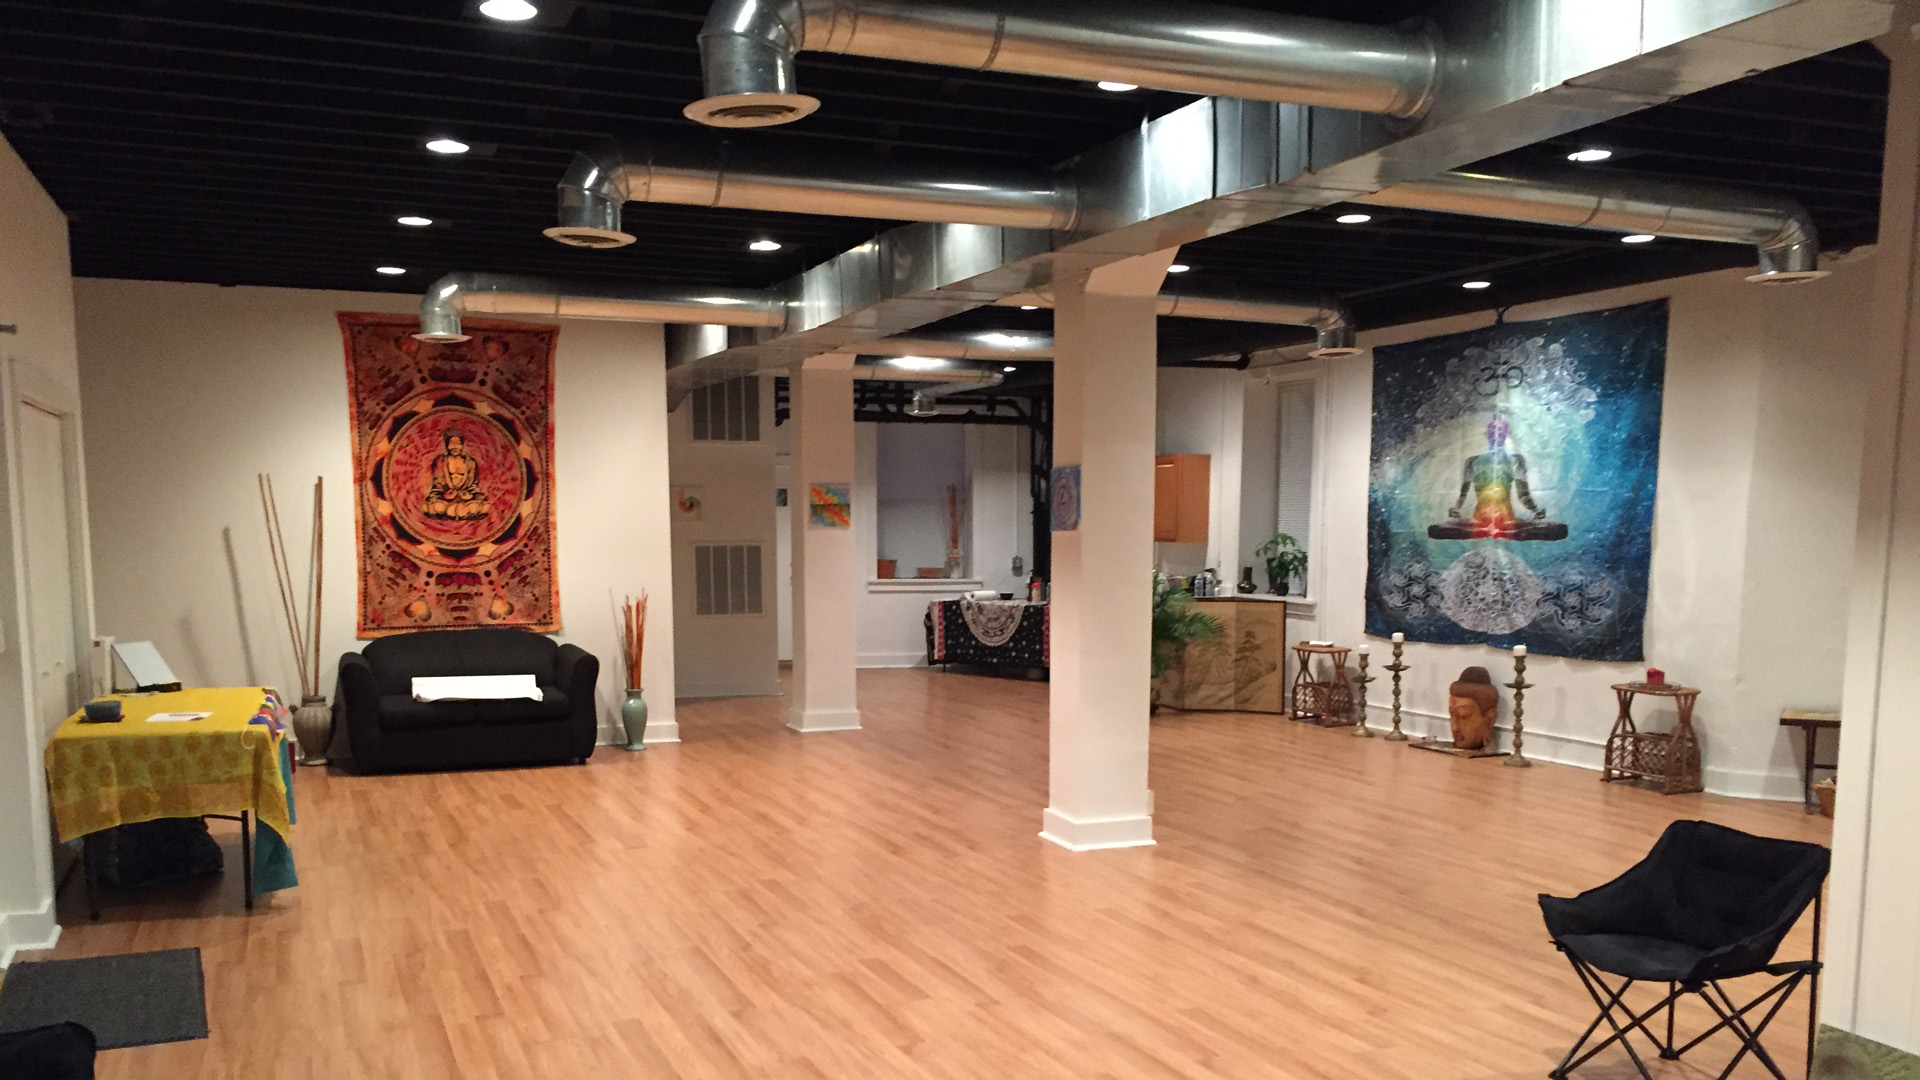 PRIVATE EVENT - Ksana Meditation Center - An Open Space for Healing & Growth